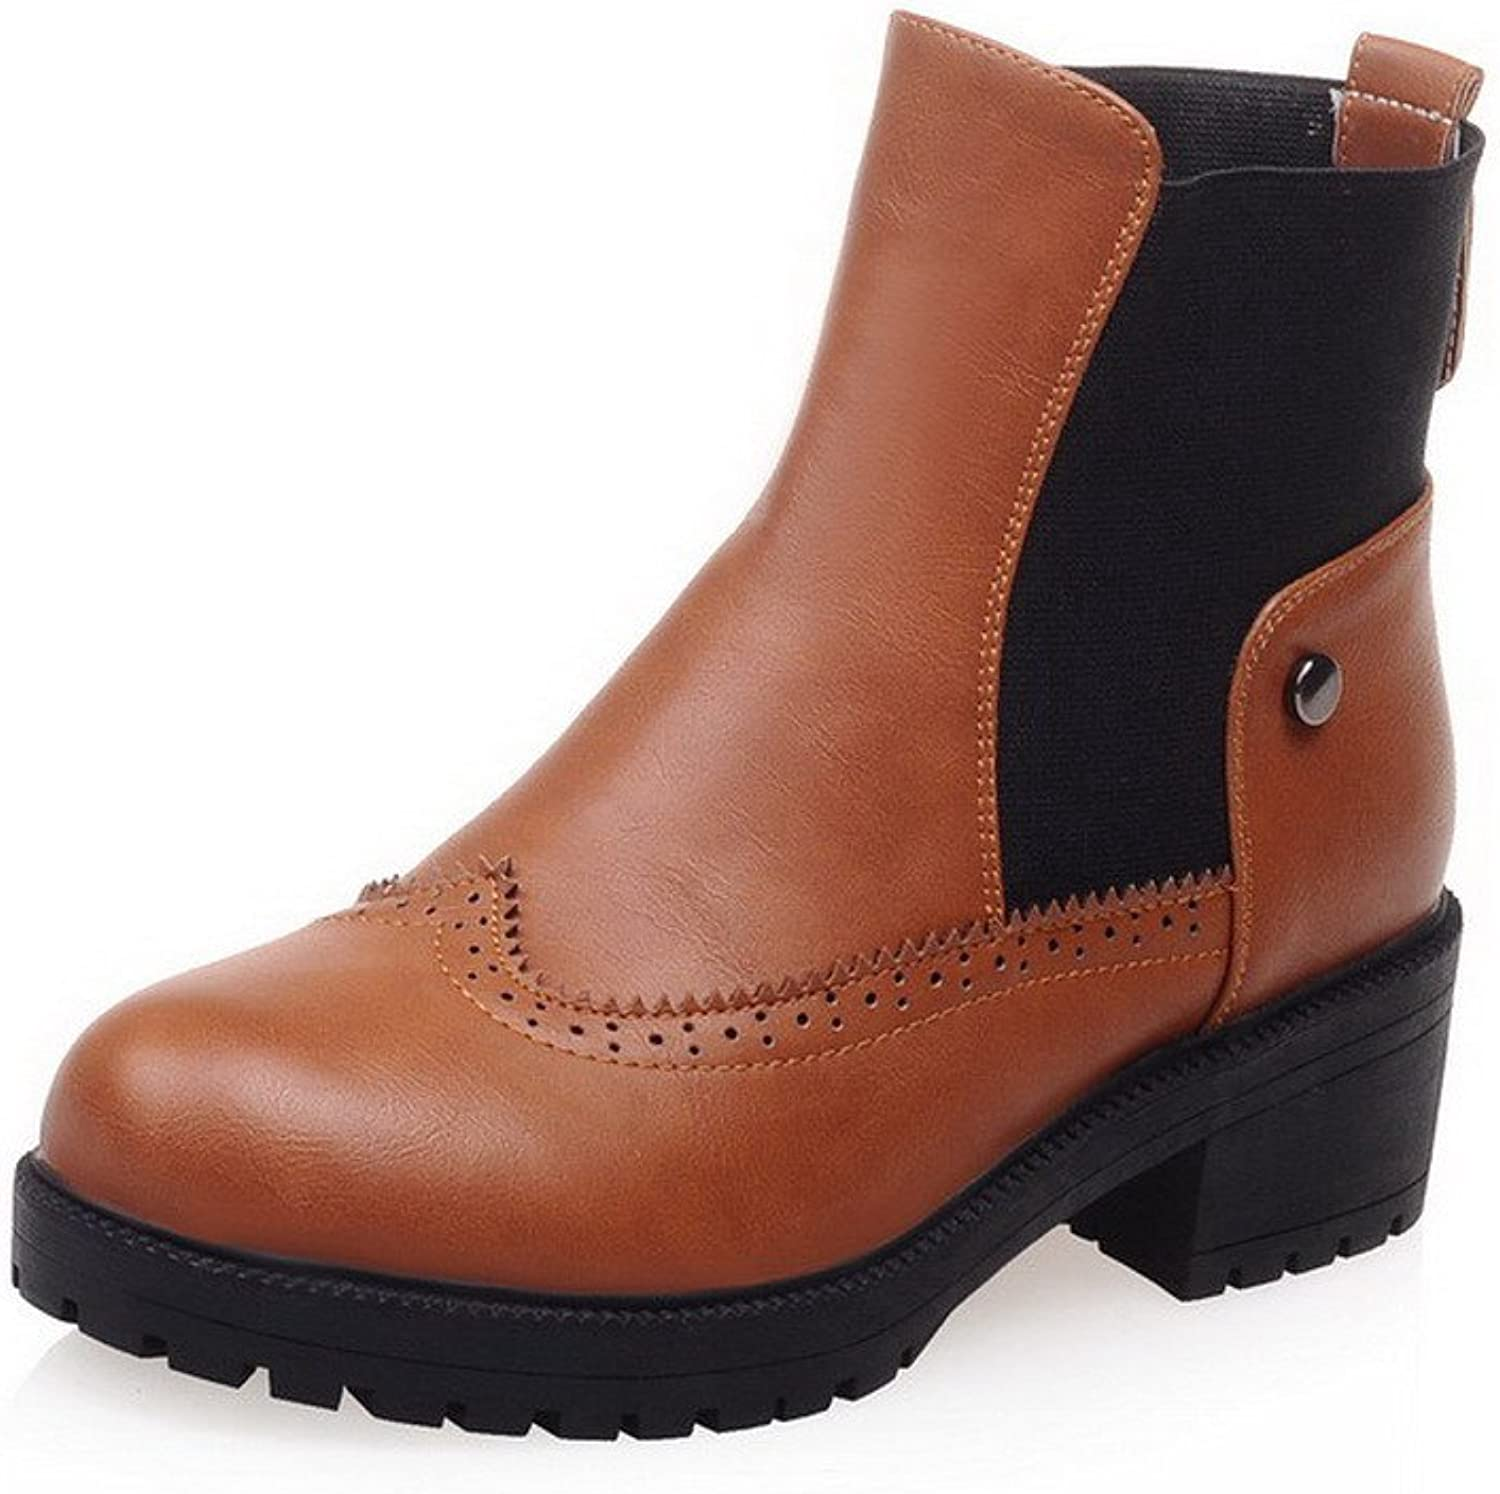 WeenFashion Women's Assorted color Round Closed Toe Blend Materials PU Low-top Boots